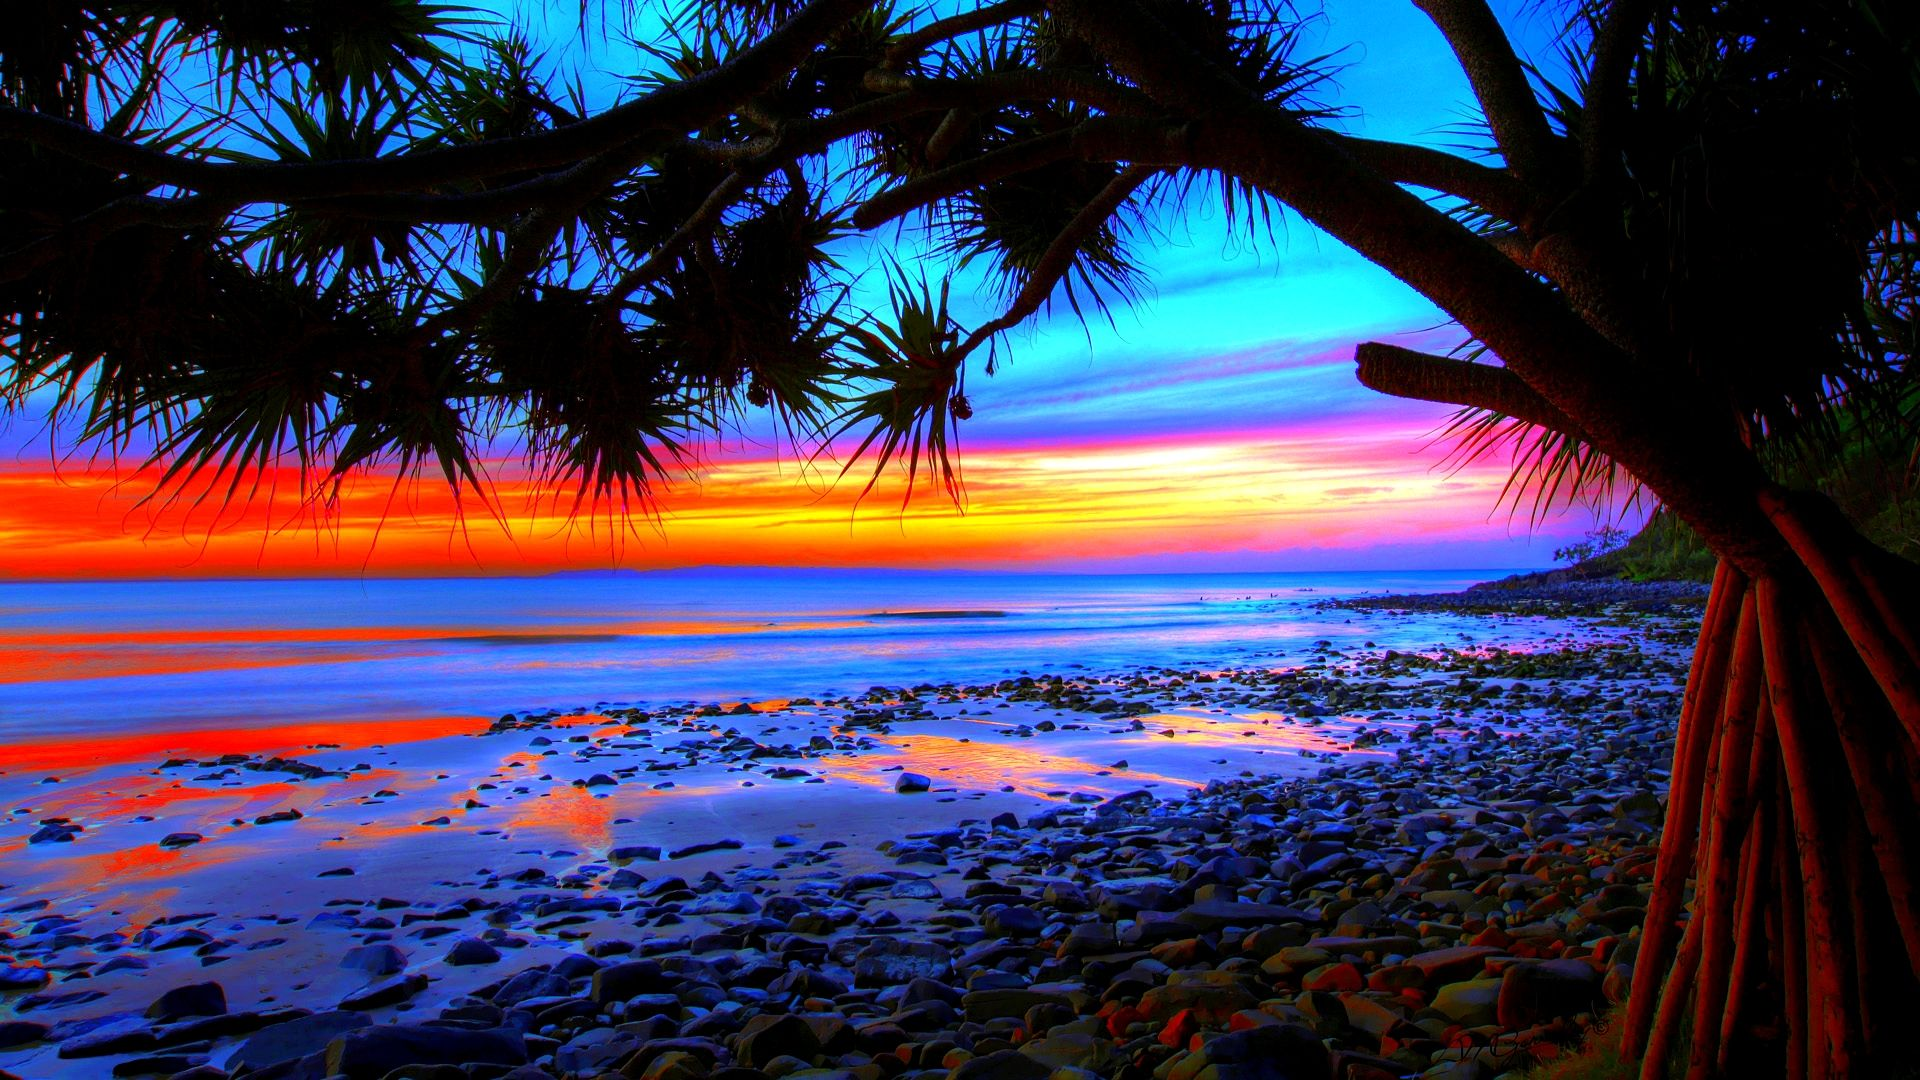 Sunset At The Beach Background Images Download 19635 Wallpaper Beach Sunset Wallpaper Sunset Wallpaper Beach Wallpaper